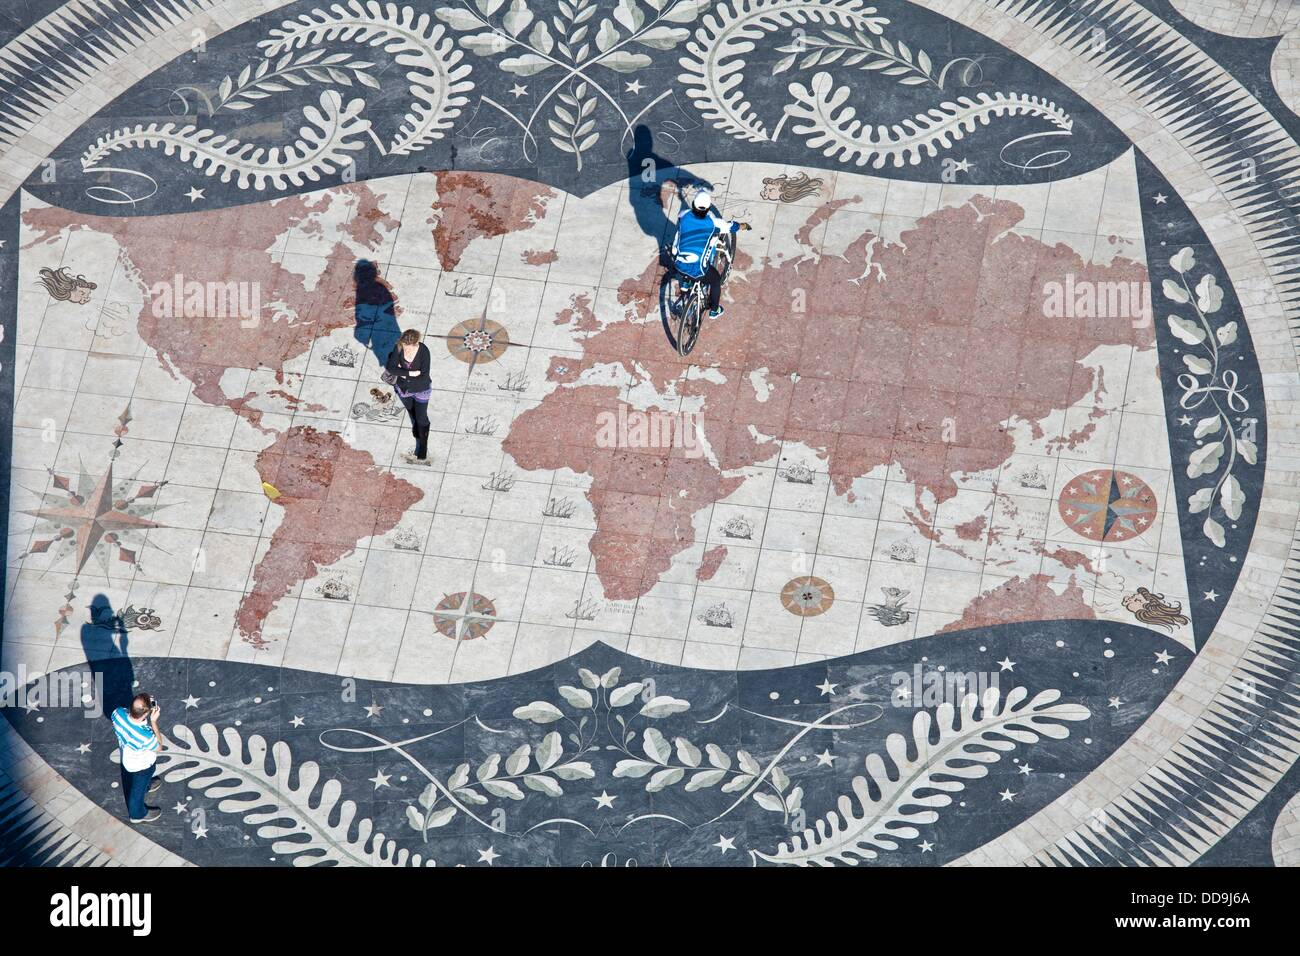 Tourists on a giant world map at the foot of the Monument to the Discoveries, Padrao dos Descobrimentos, Belem, - Stock Image